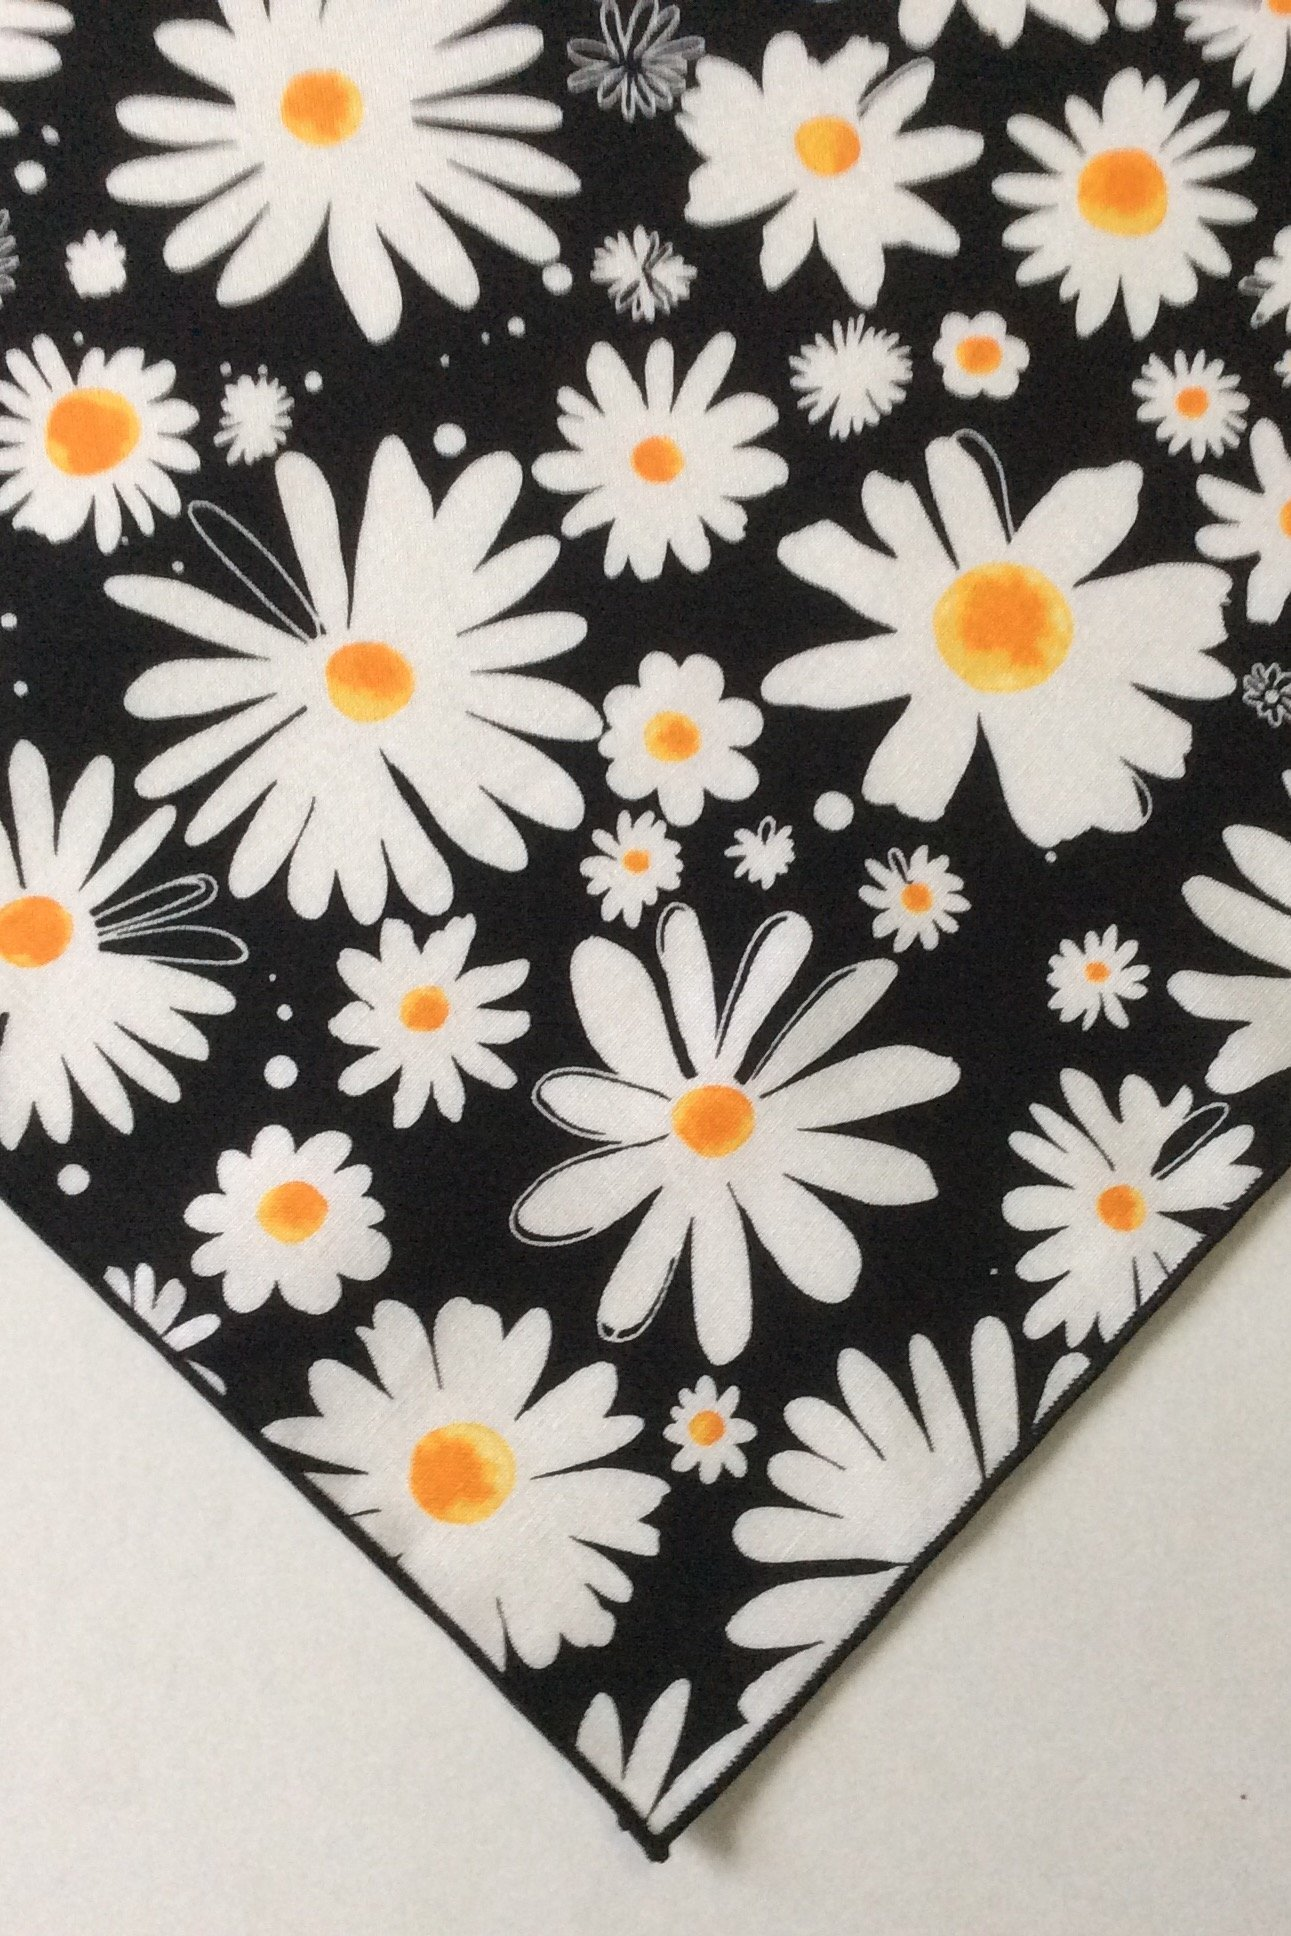 Daisies on Black Bandana